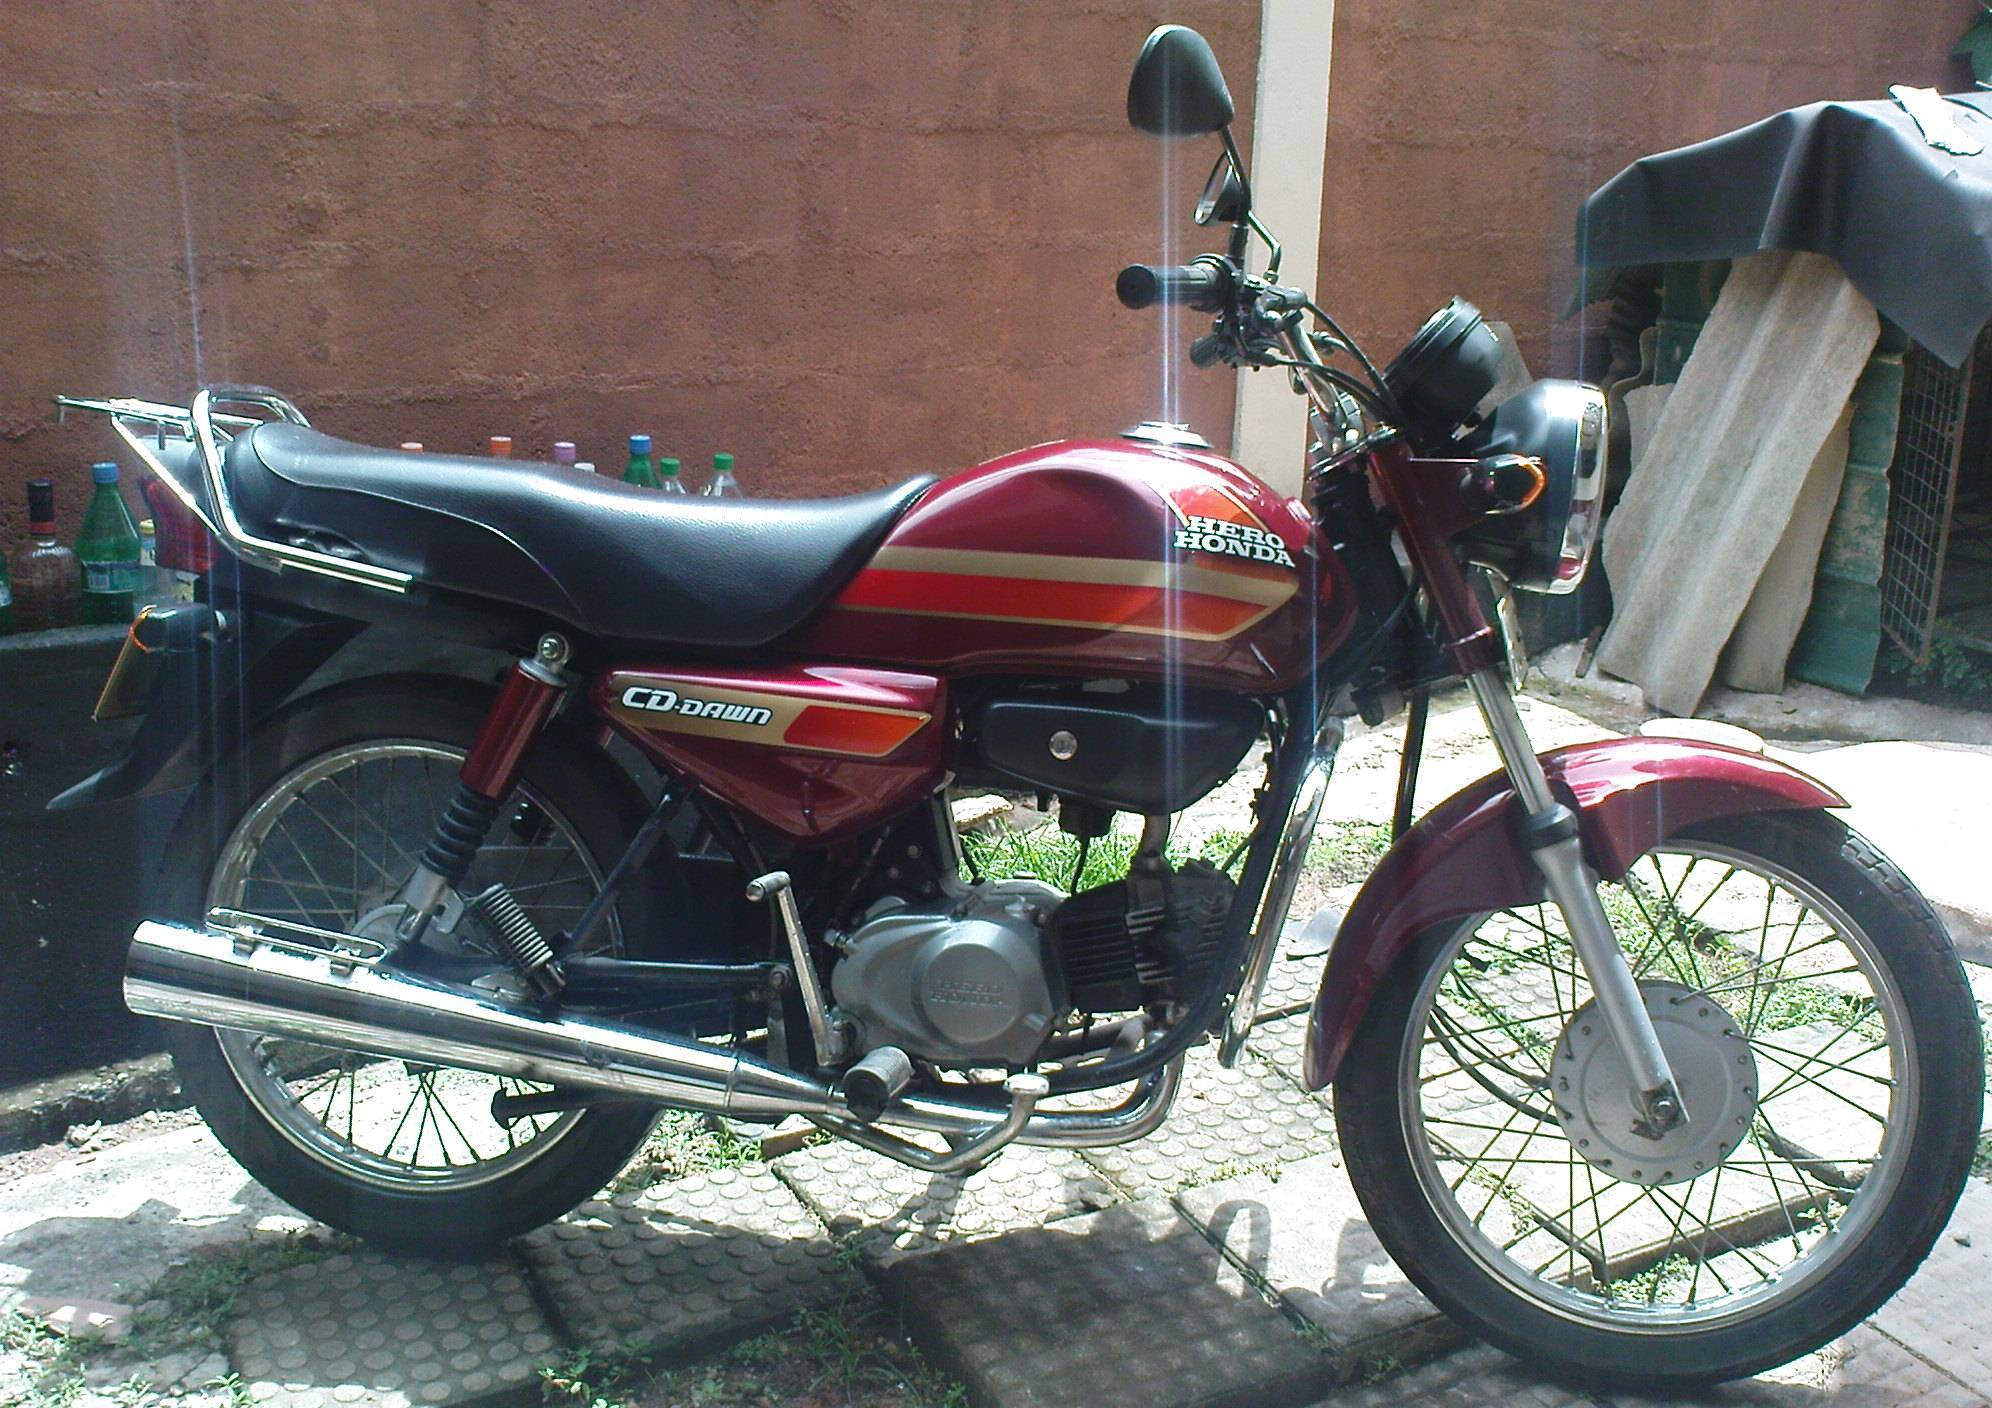 Hero Honda CD Dawn 100 #11